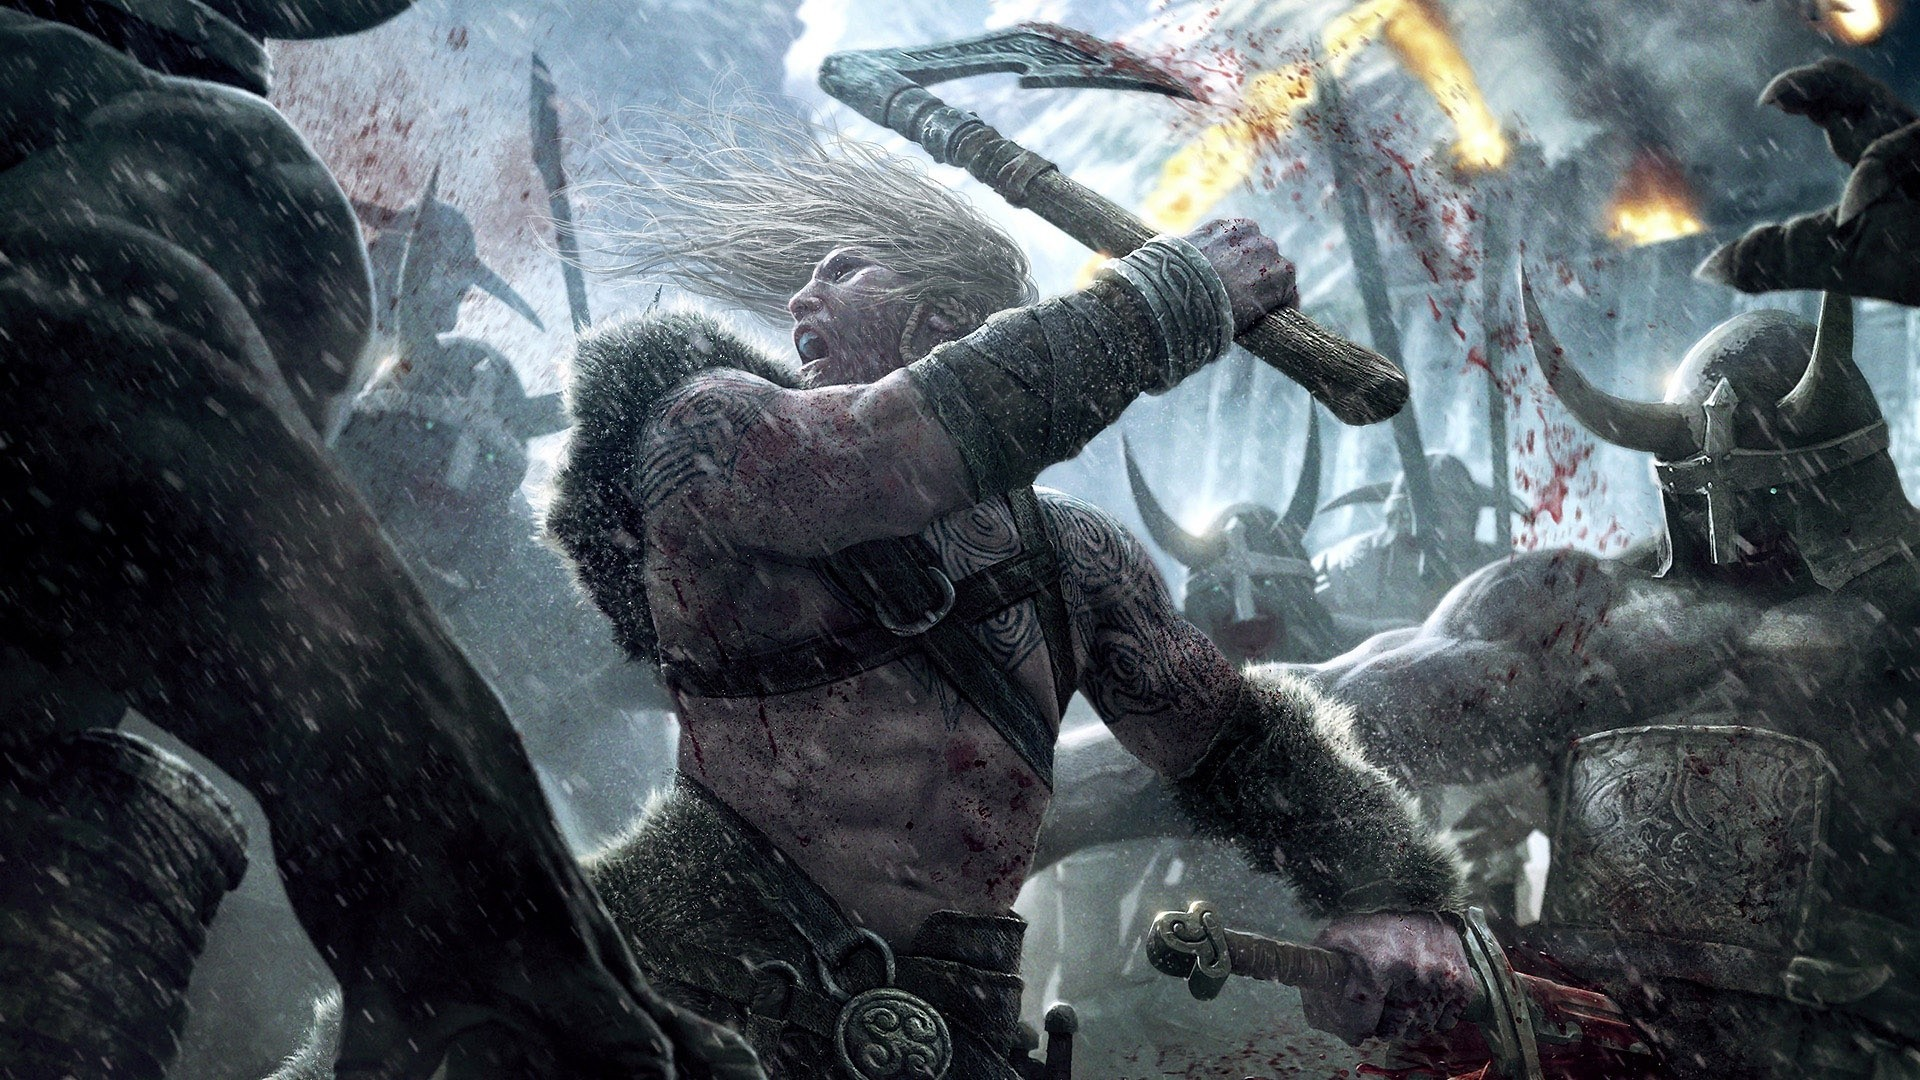 Hd Viking Wallpaper Posted By Michelle Sellers